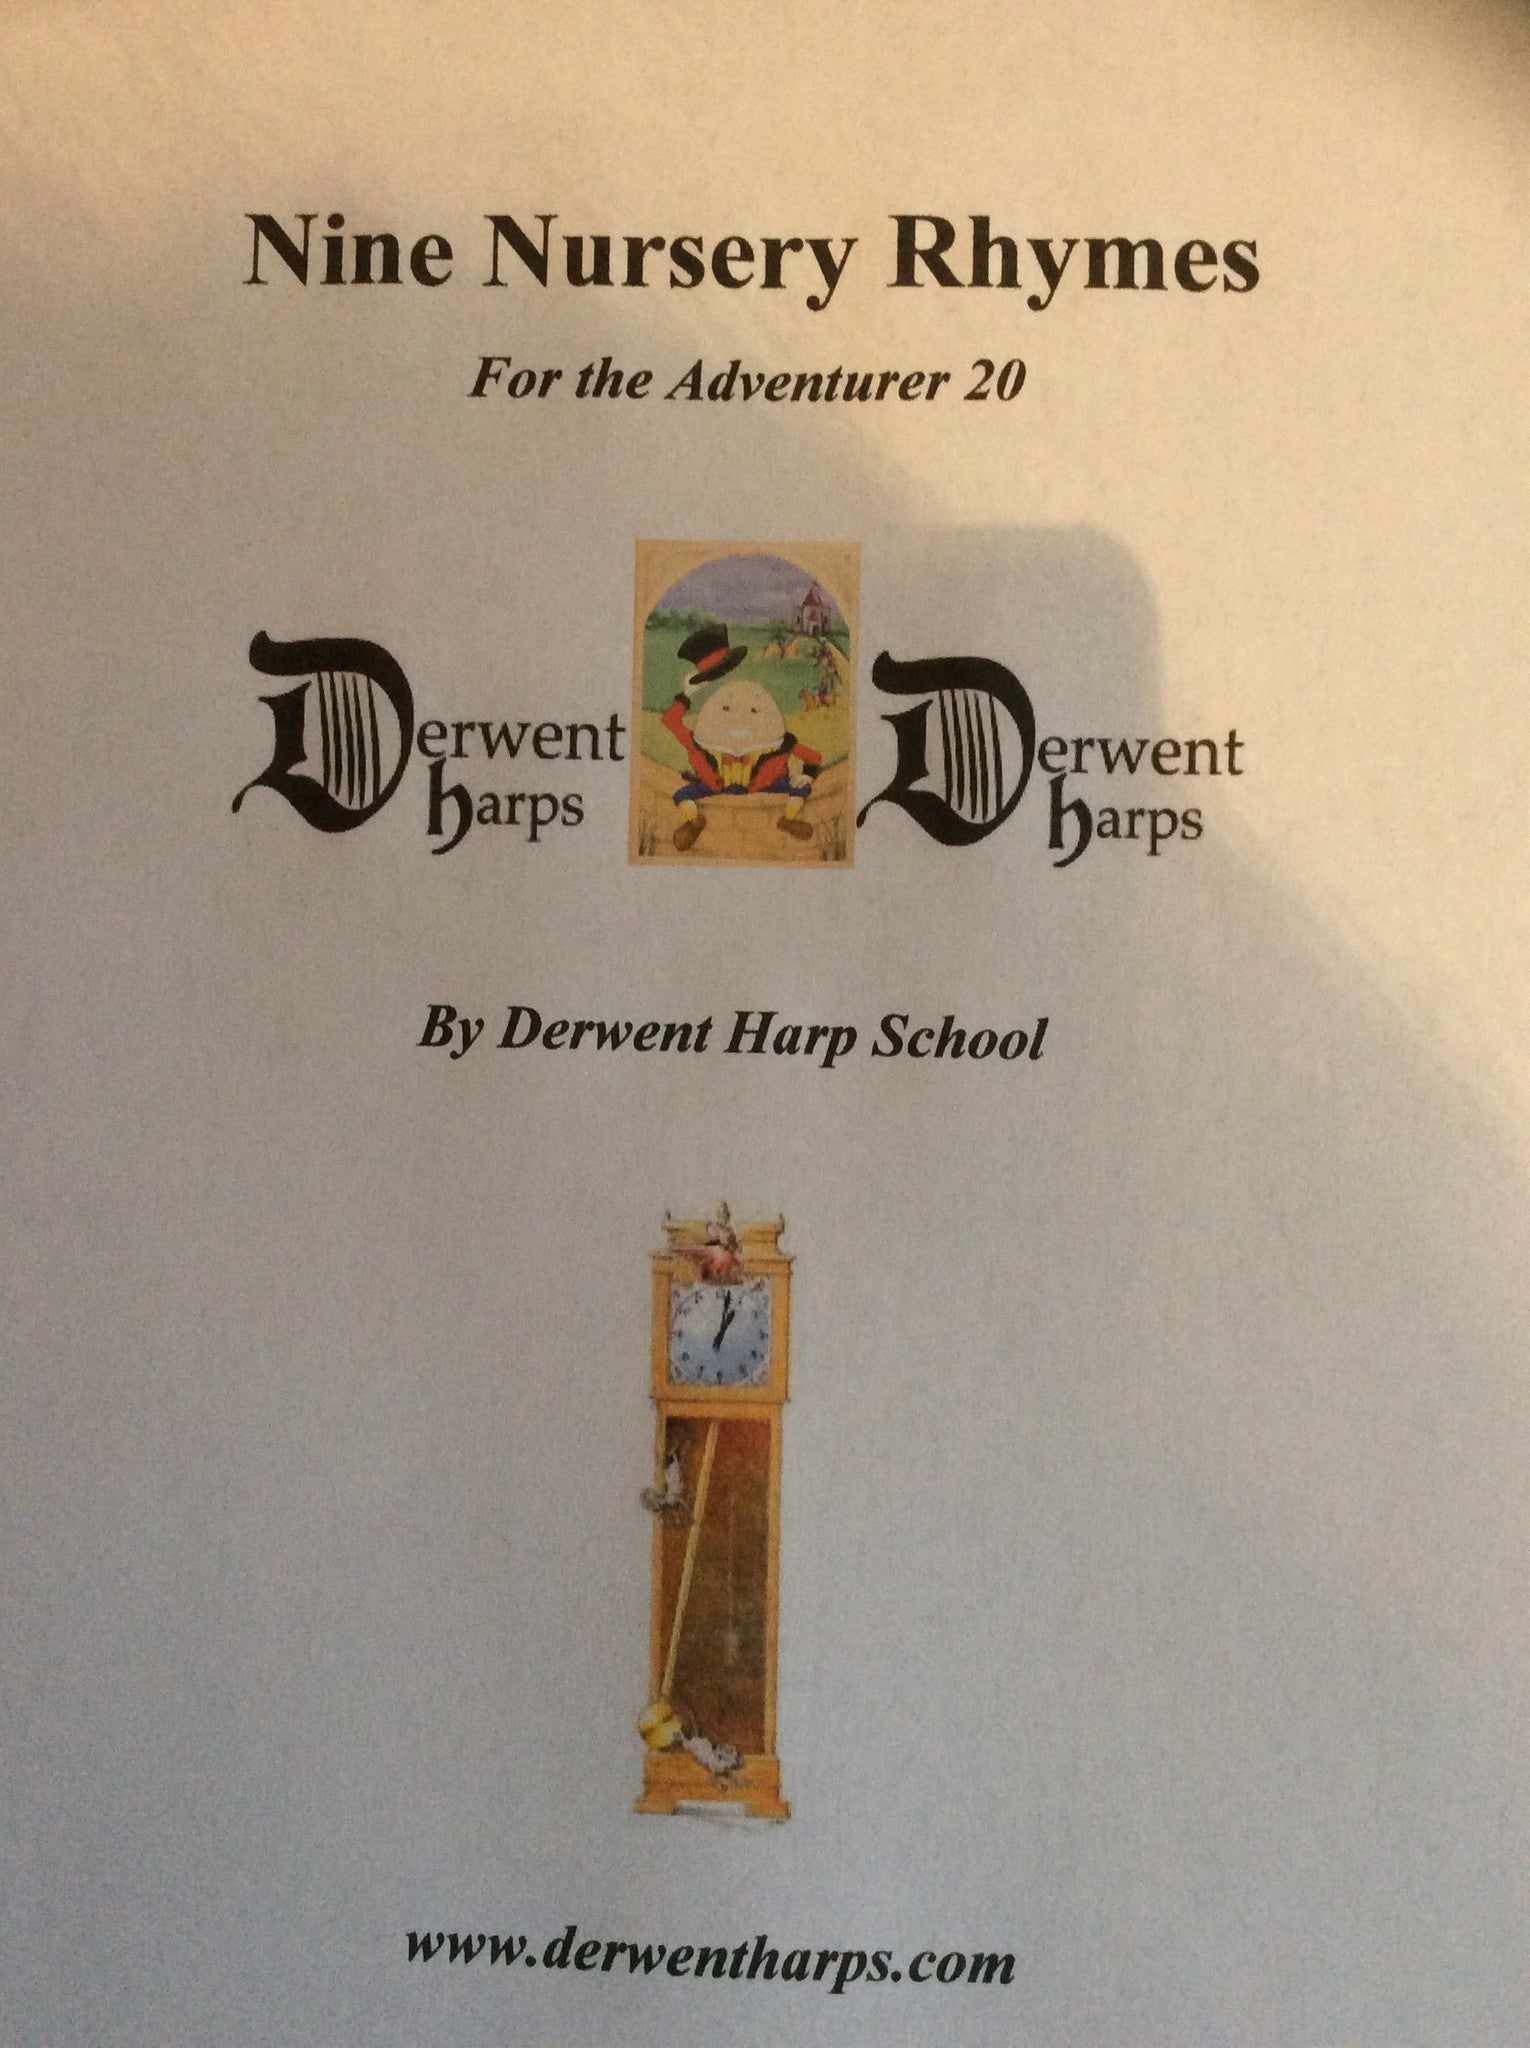 Nine Nursery Rhymes for the Adventurer 20